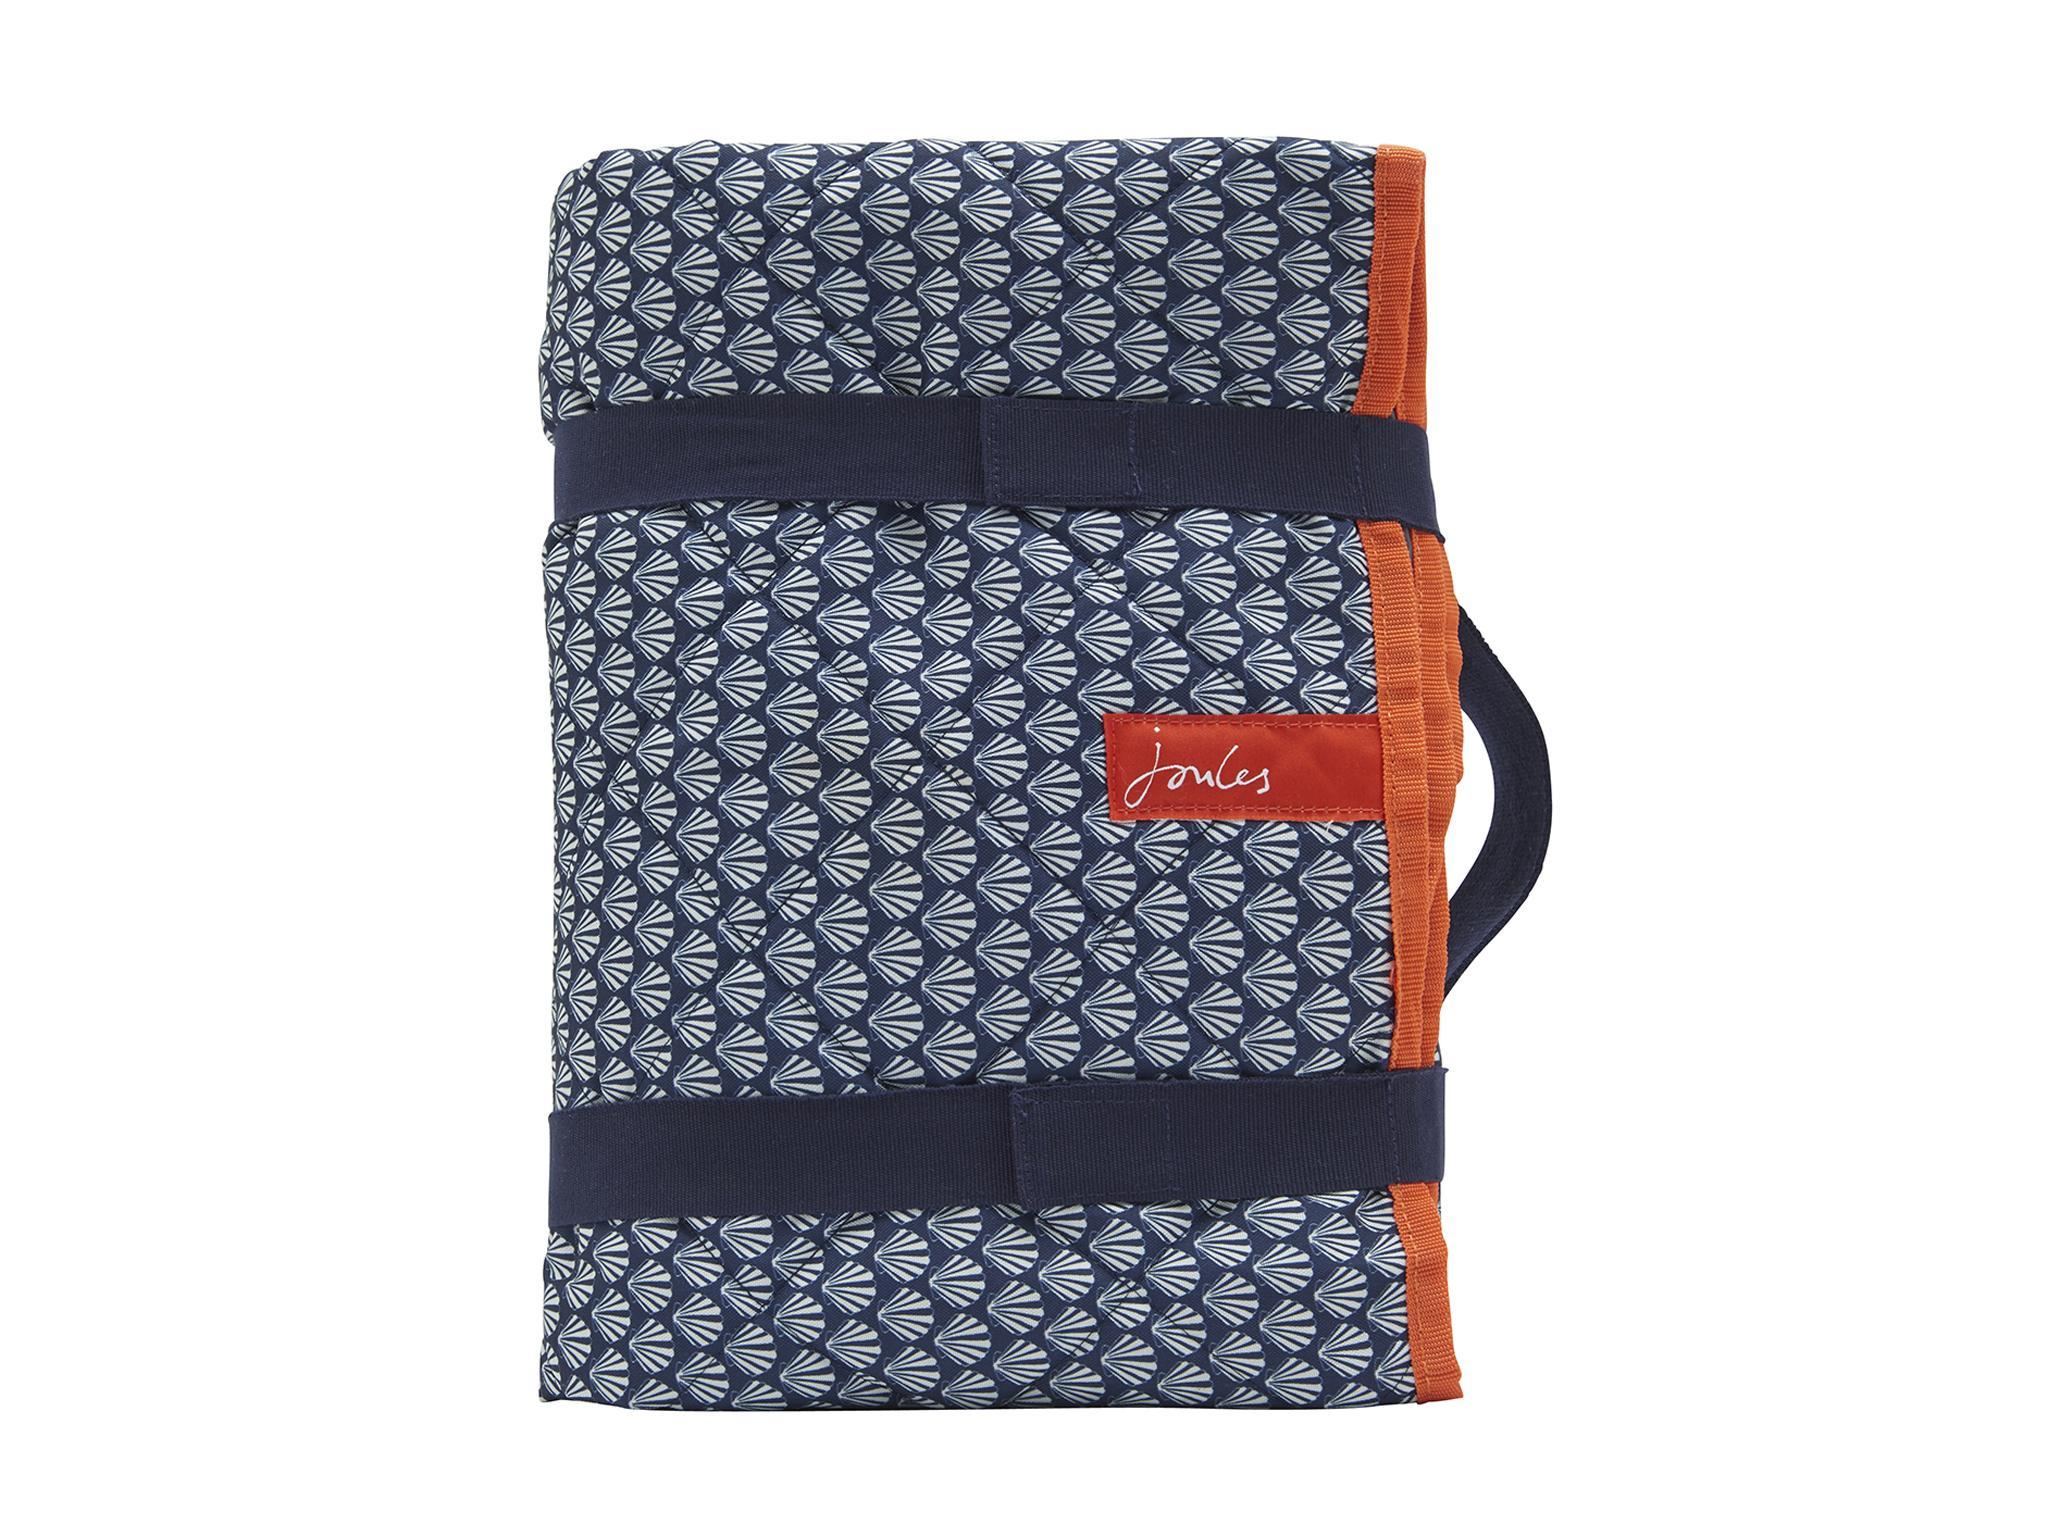 fe532580e059 best picnic blankets | The Independent